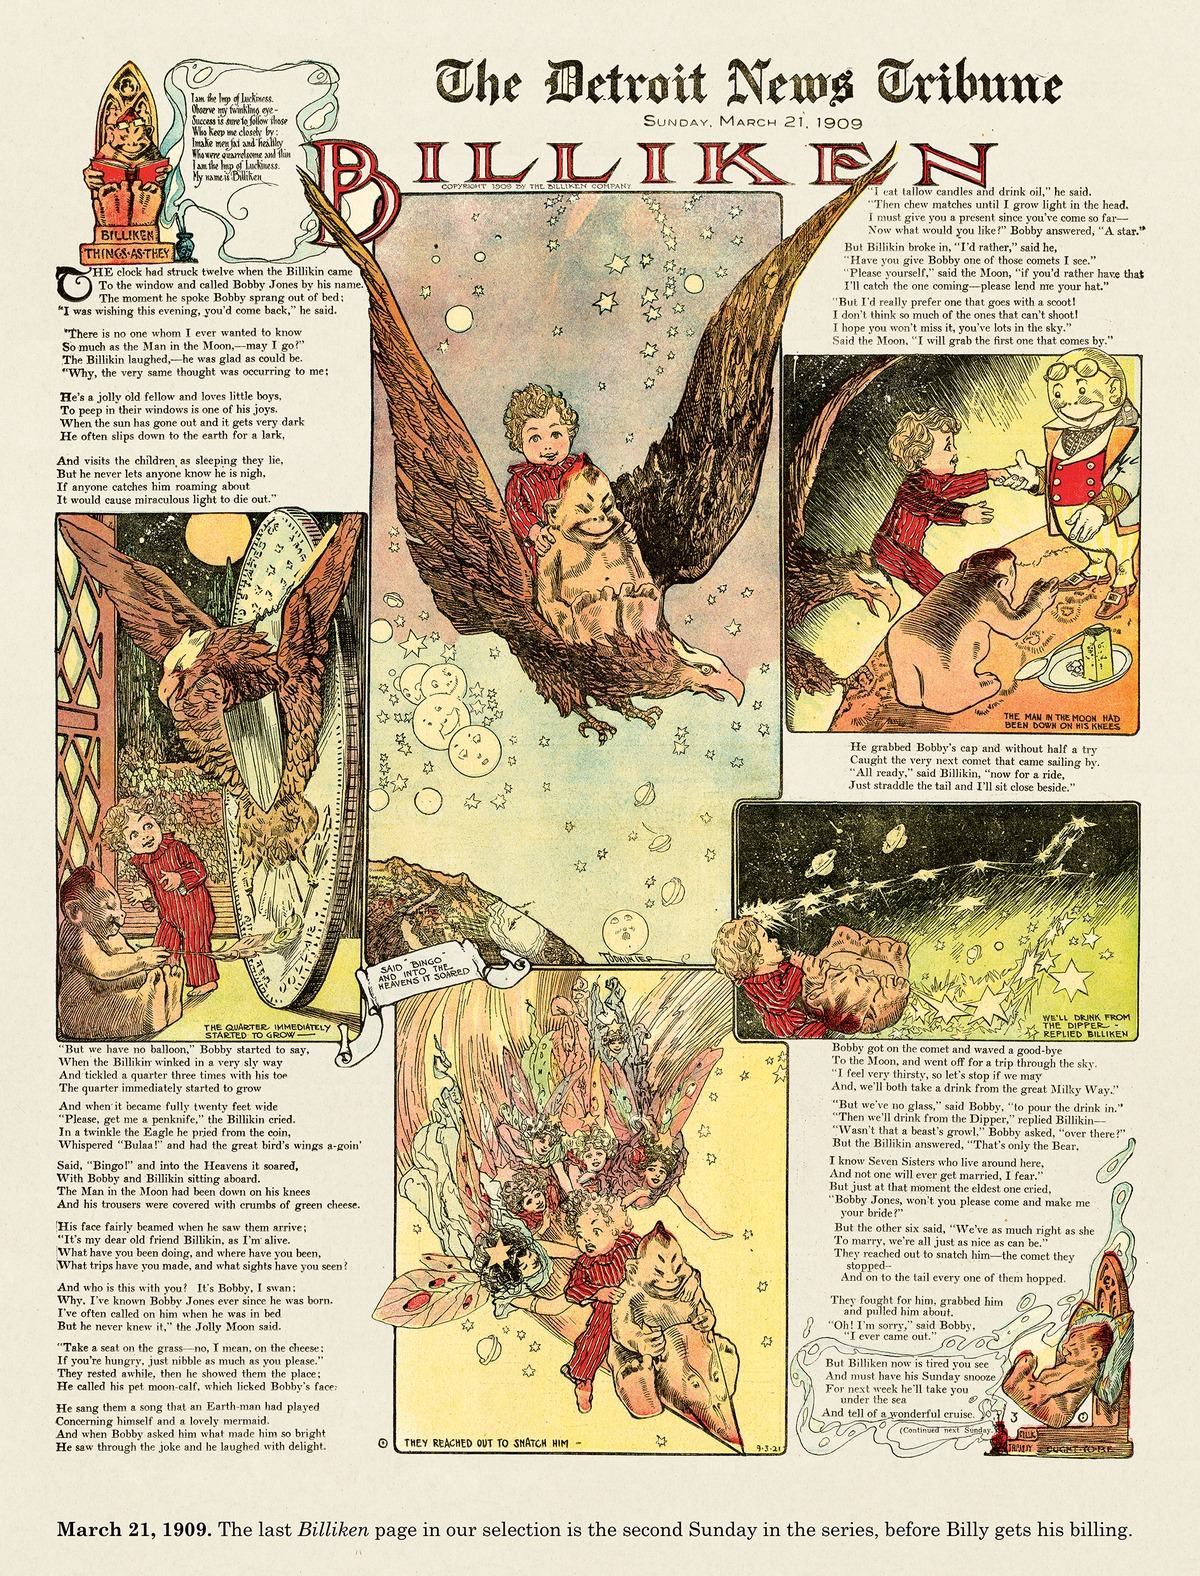 Origins of the Sunday Comics by Peter Maresca on Mon, 04 Oct 2021